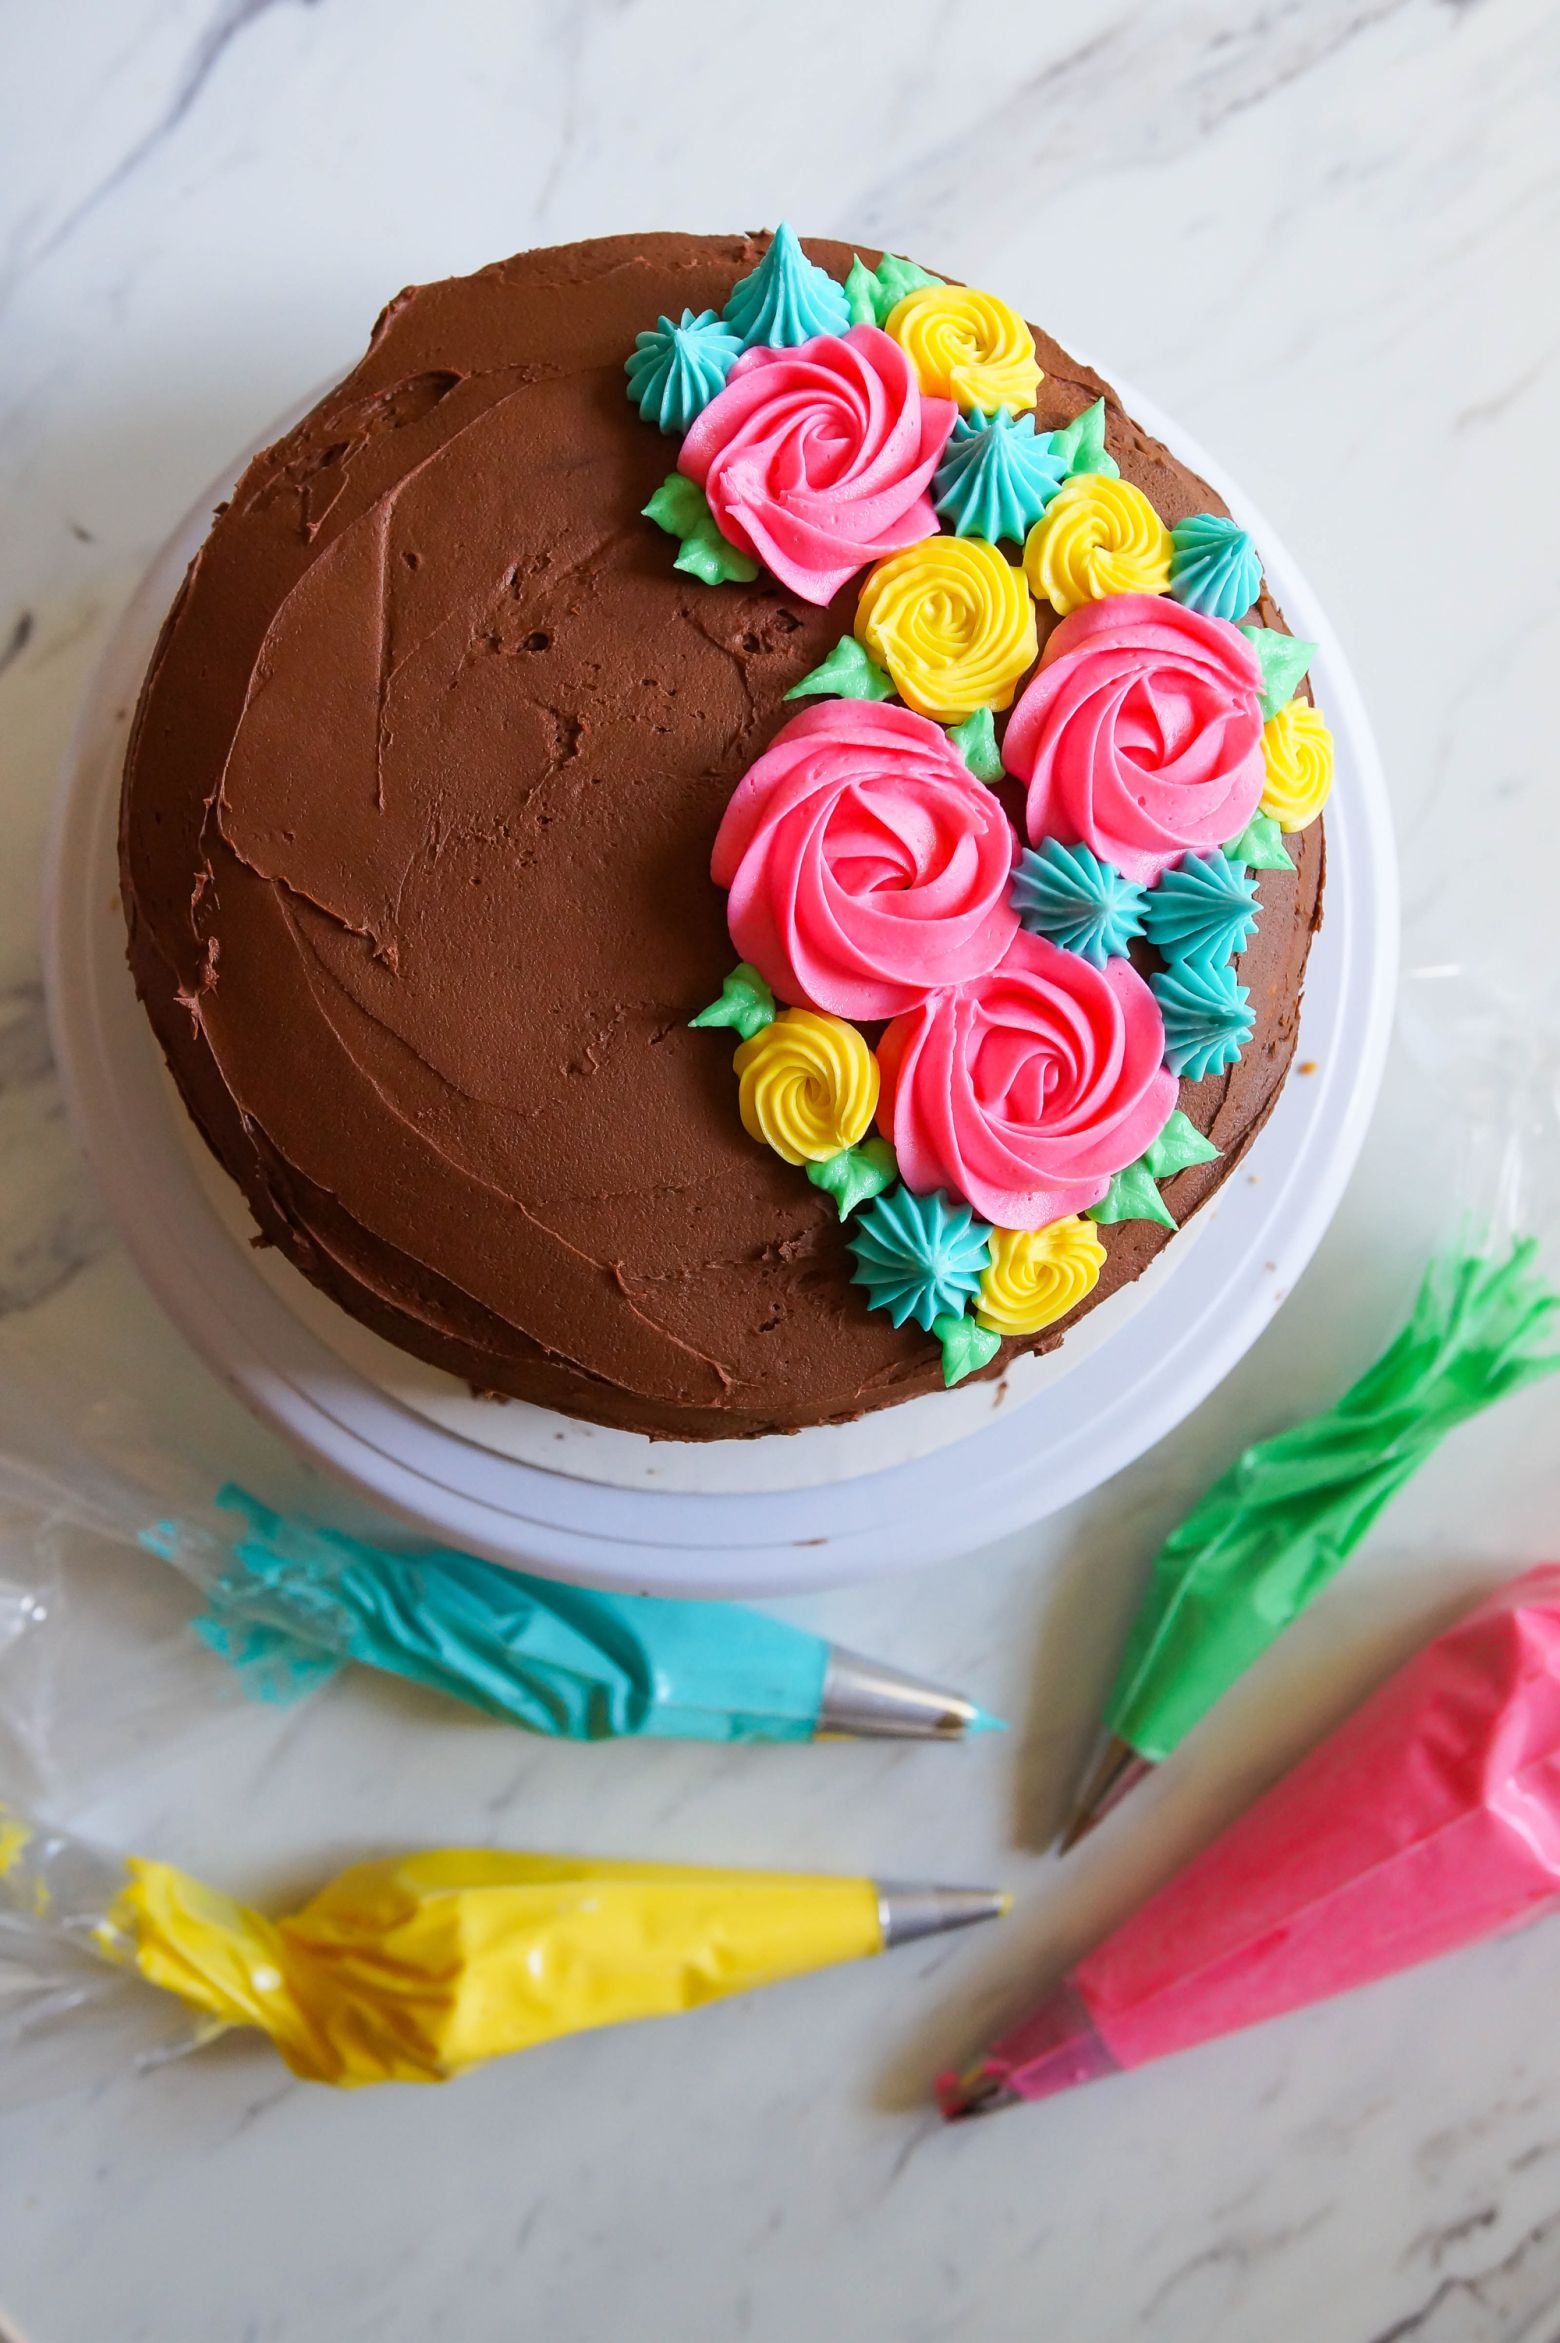 Tips For Frosting Cakes And 4 Easy Ideas With Images Easy